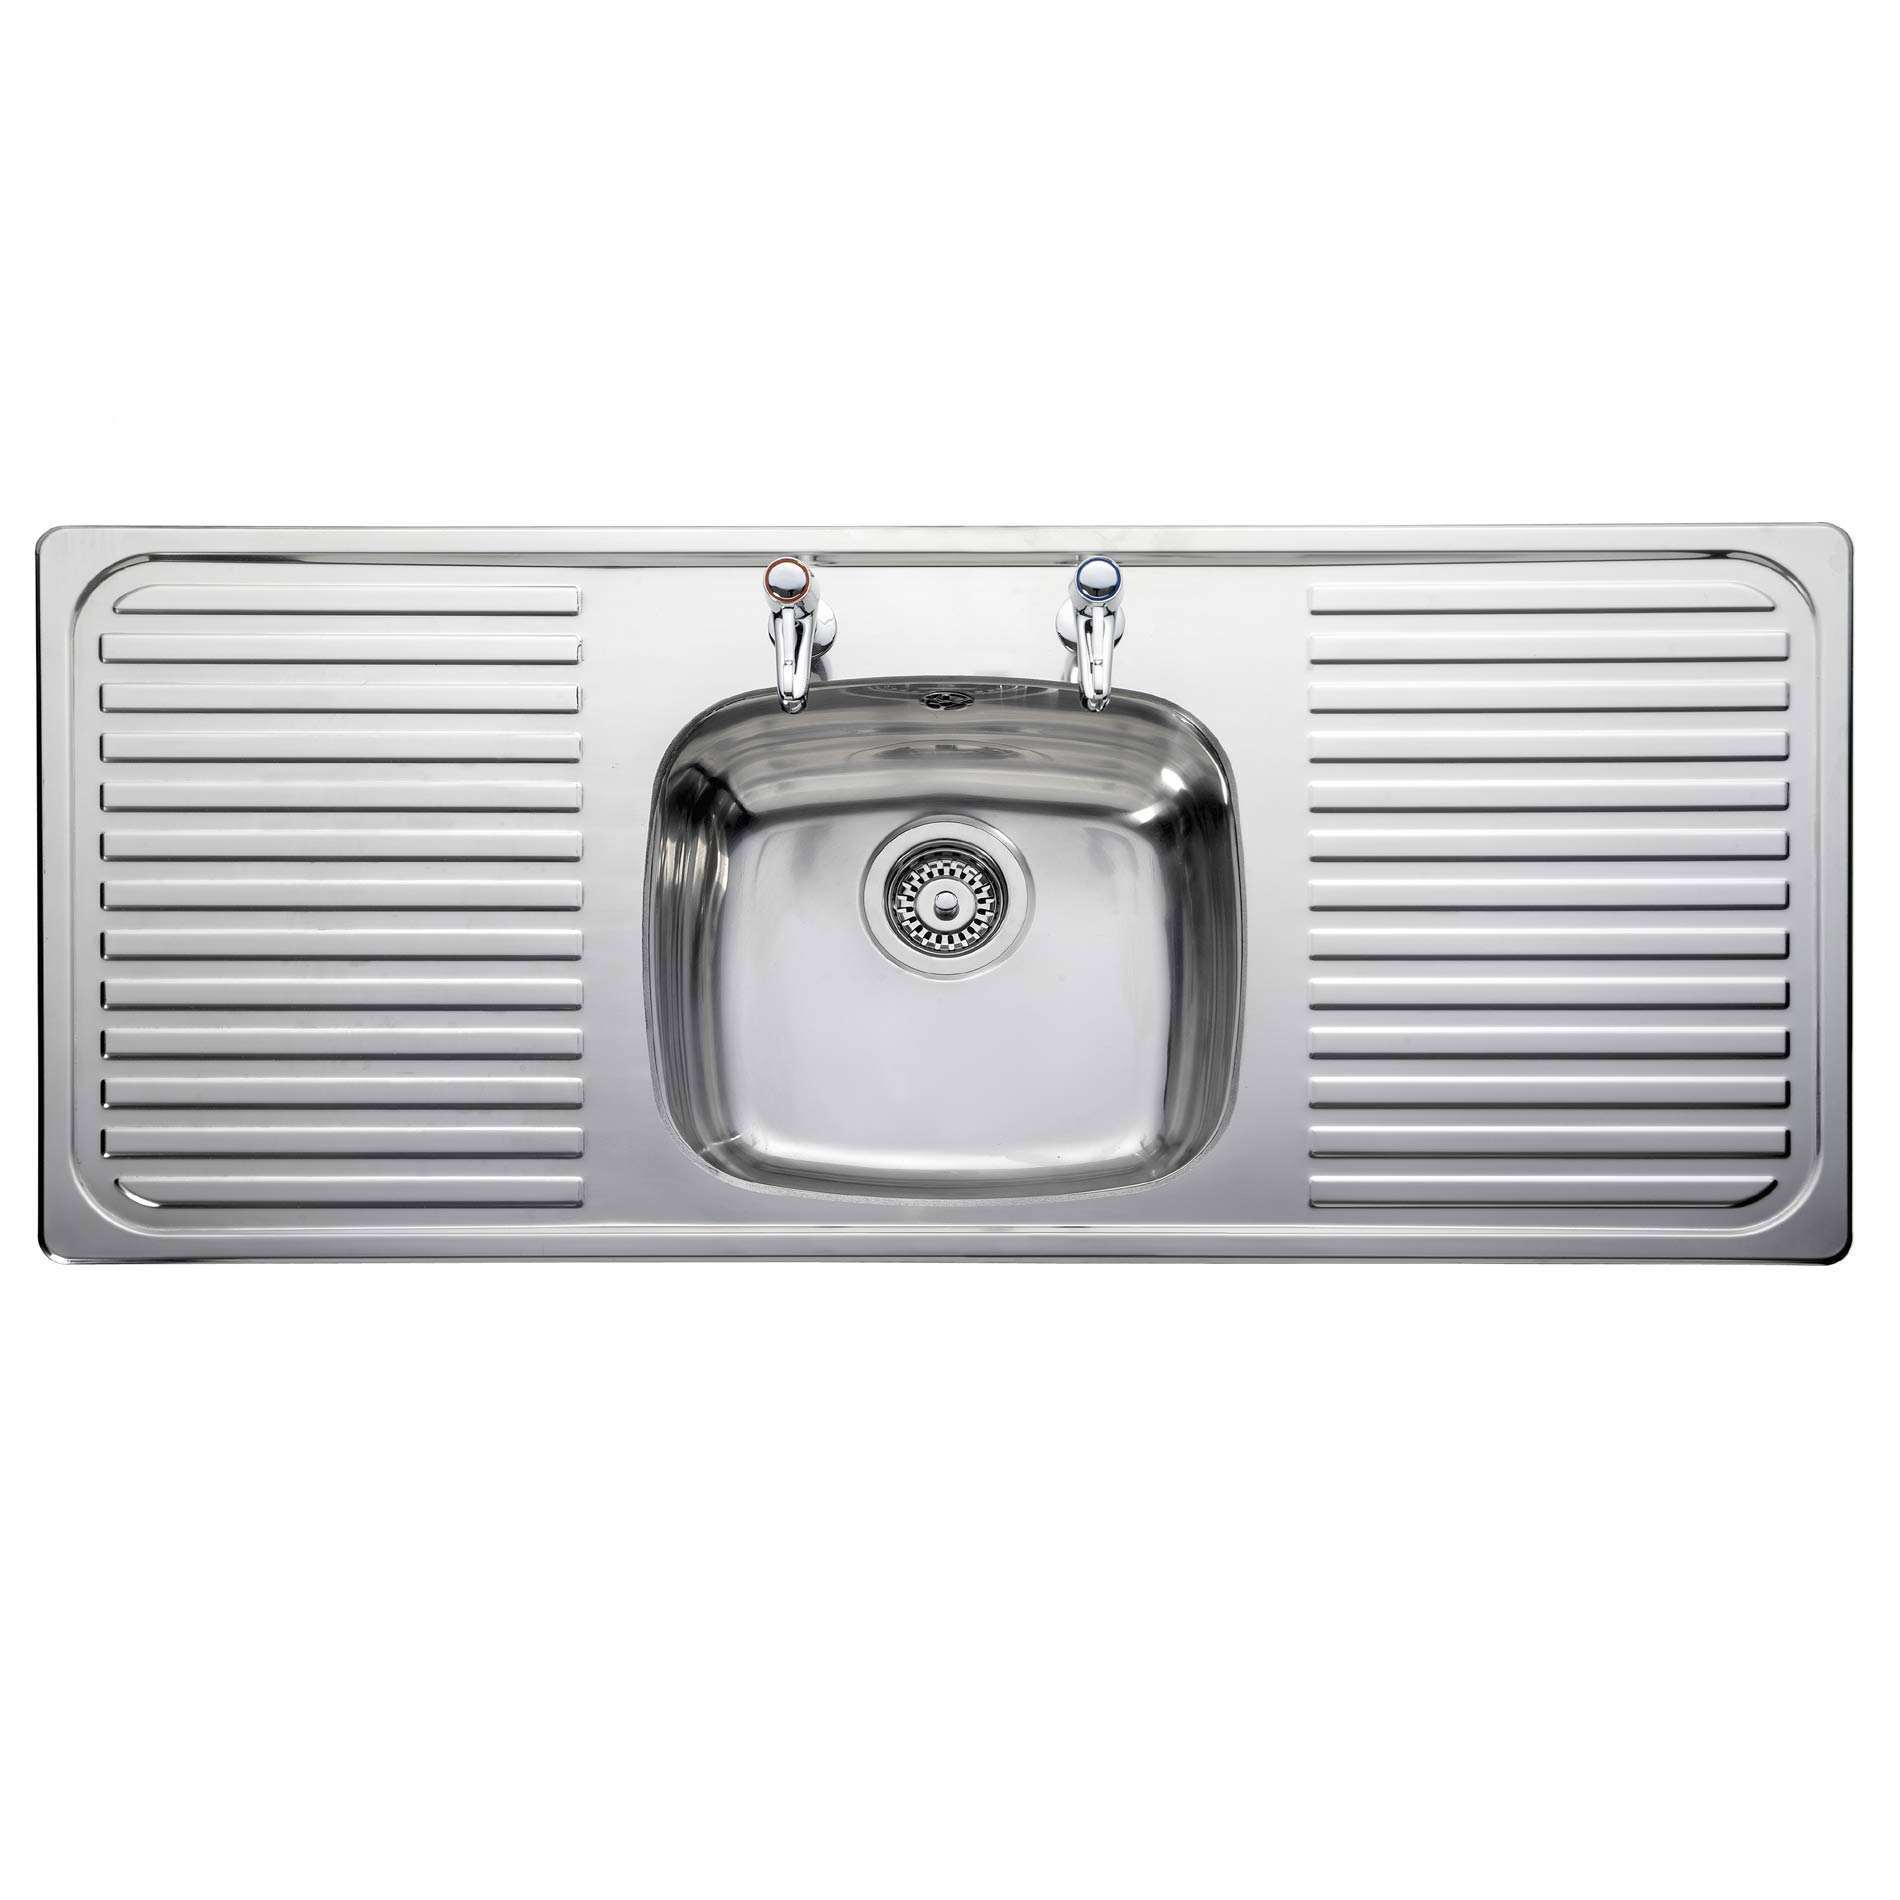 Picture of Linear LR1160 Stainless Steel Sink